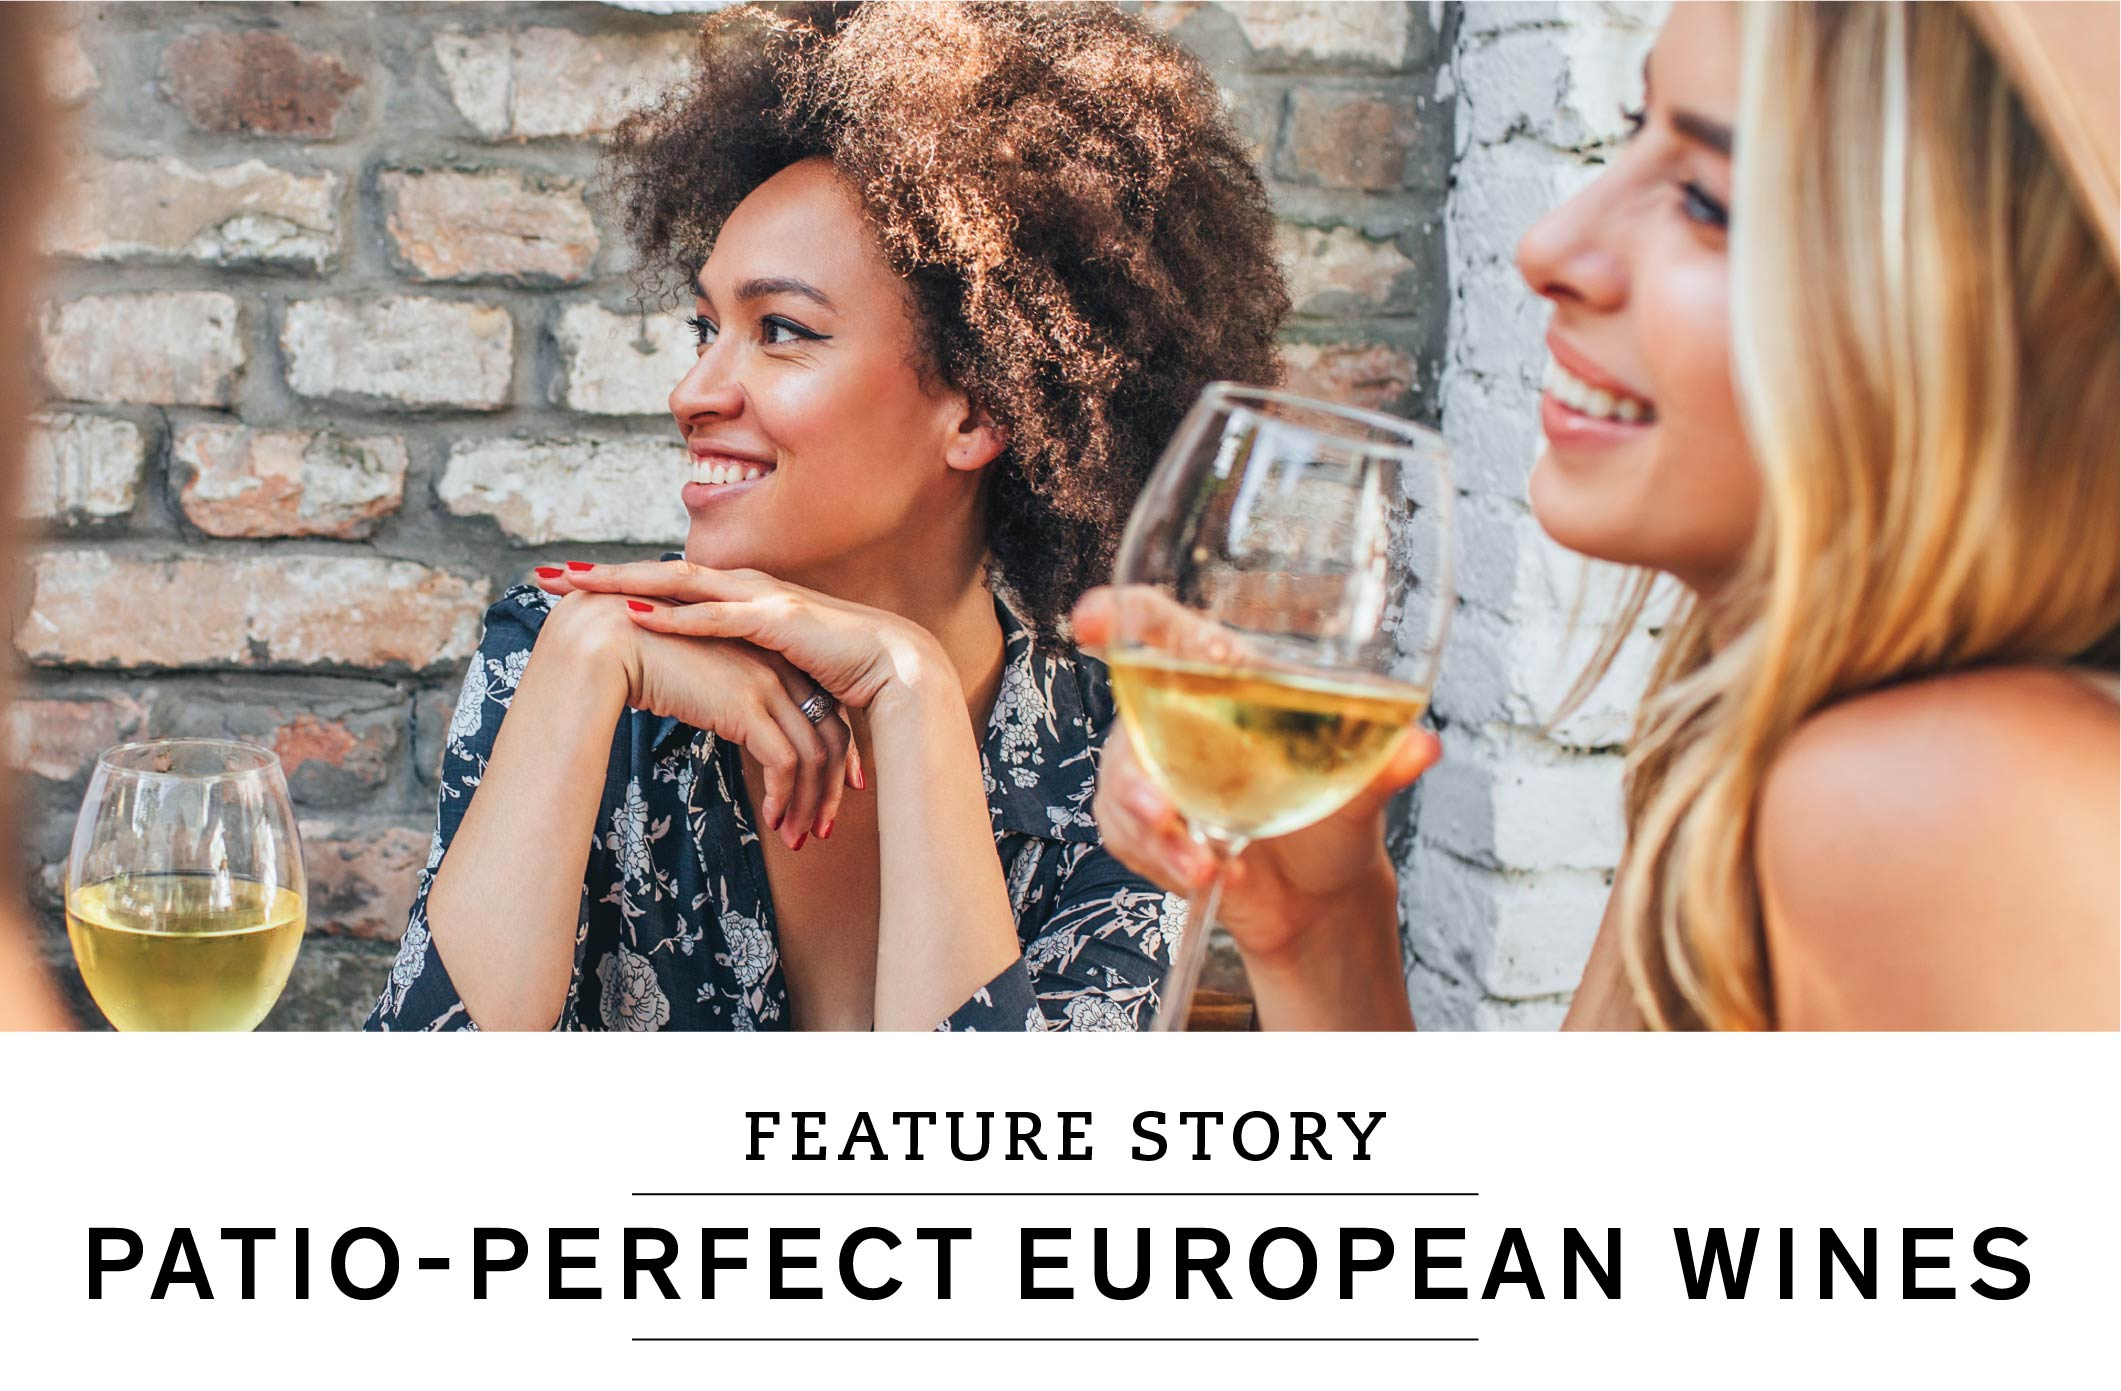 FEATURE STORY: PATIO-PERFECT EUROPEAN WINES